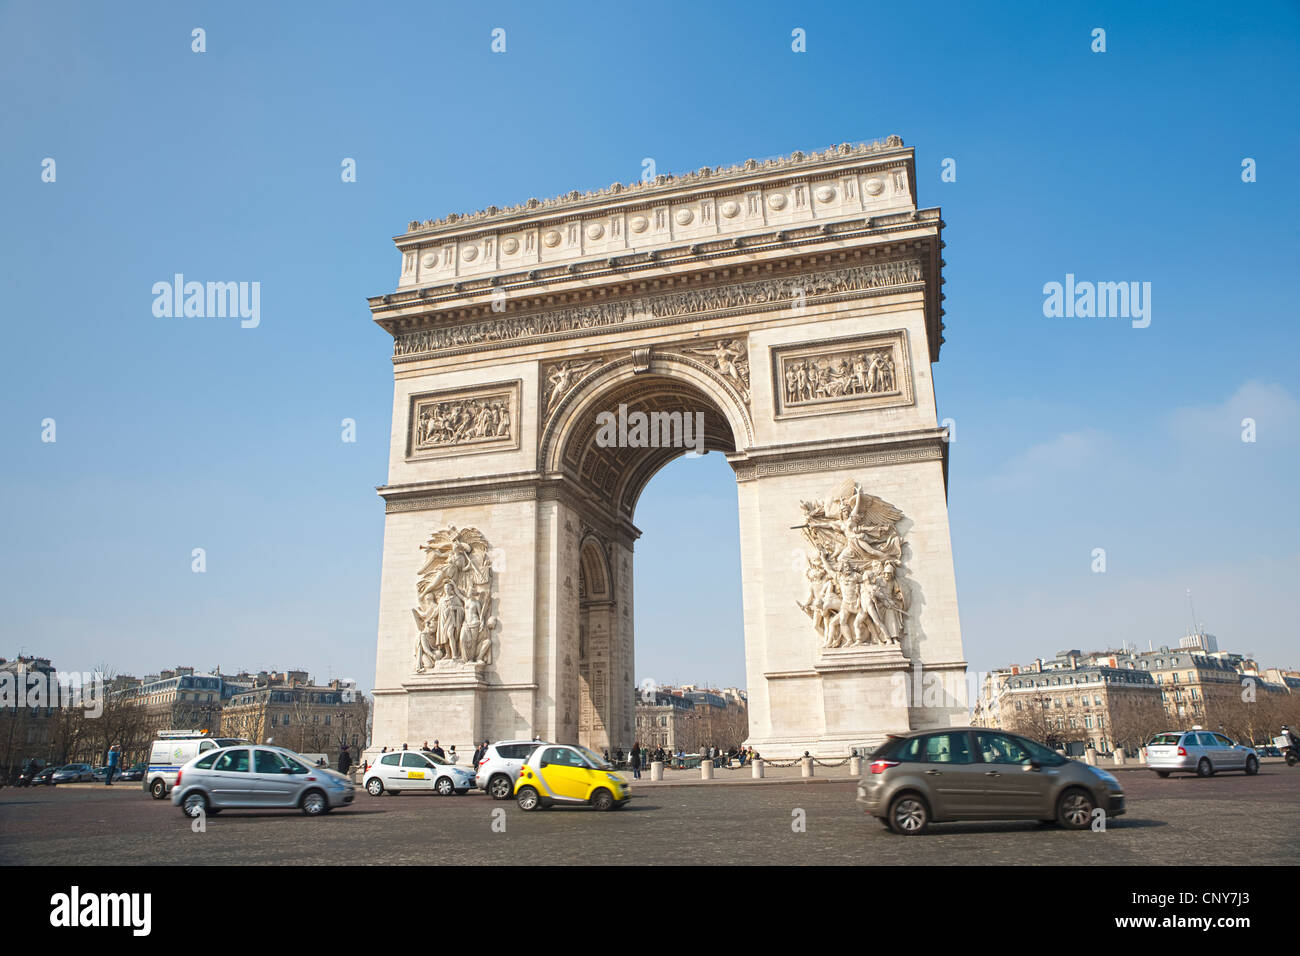 yellow smart car in traffic circle around arc de triomphe paris stock photo royalty free image. Black Bedroom Furniture Sets. Home Design Ideas